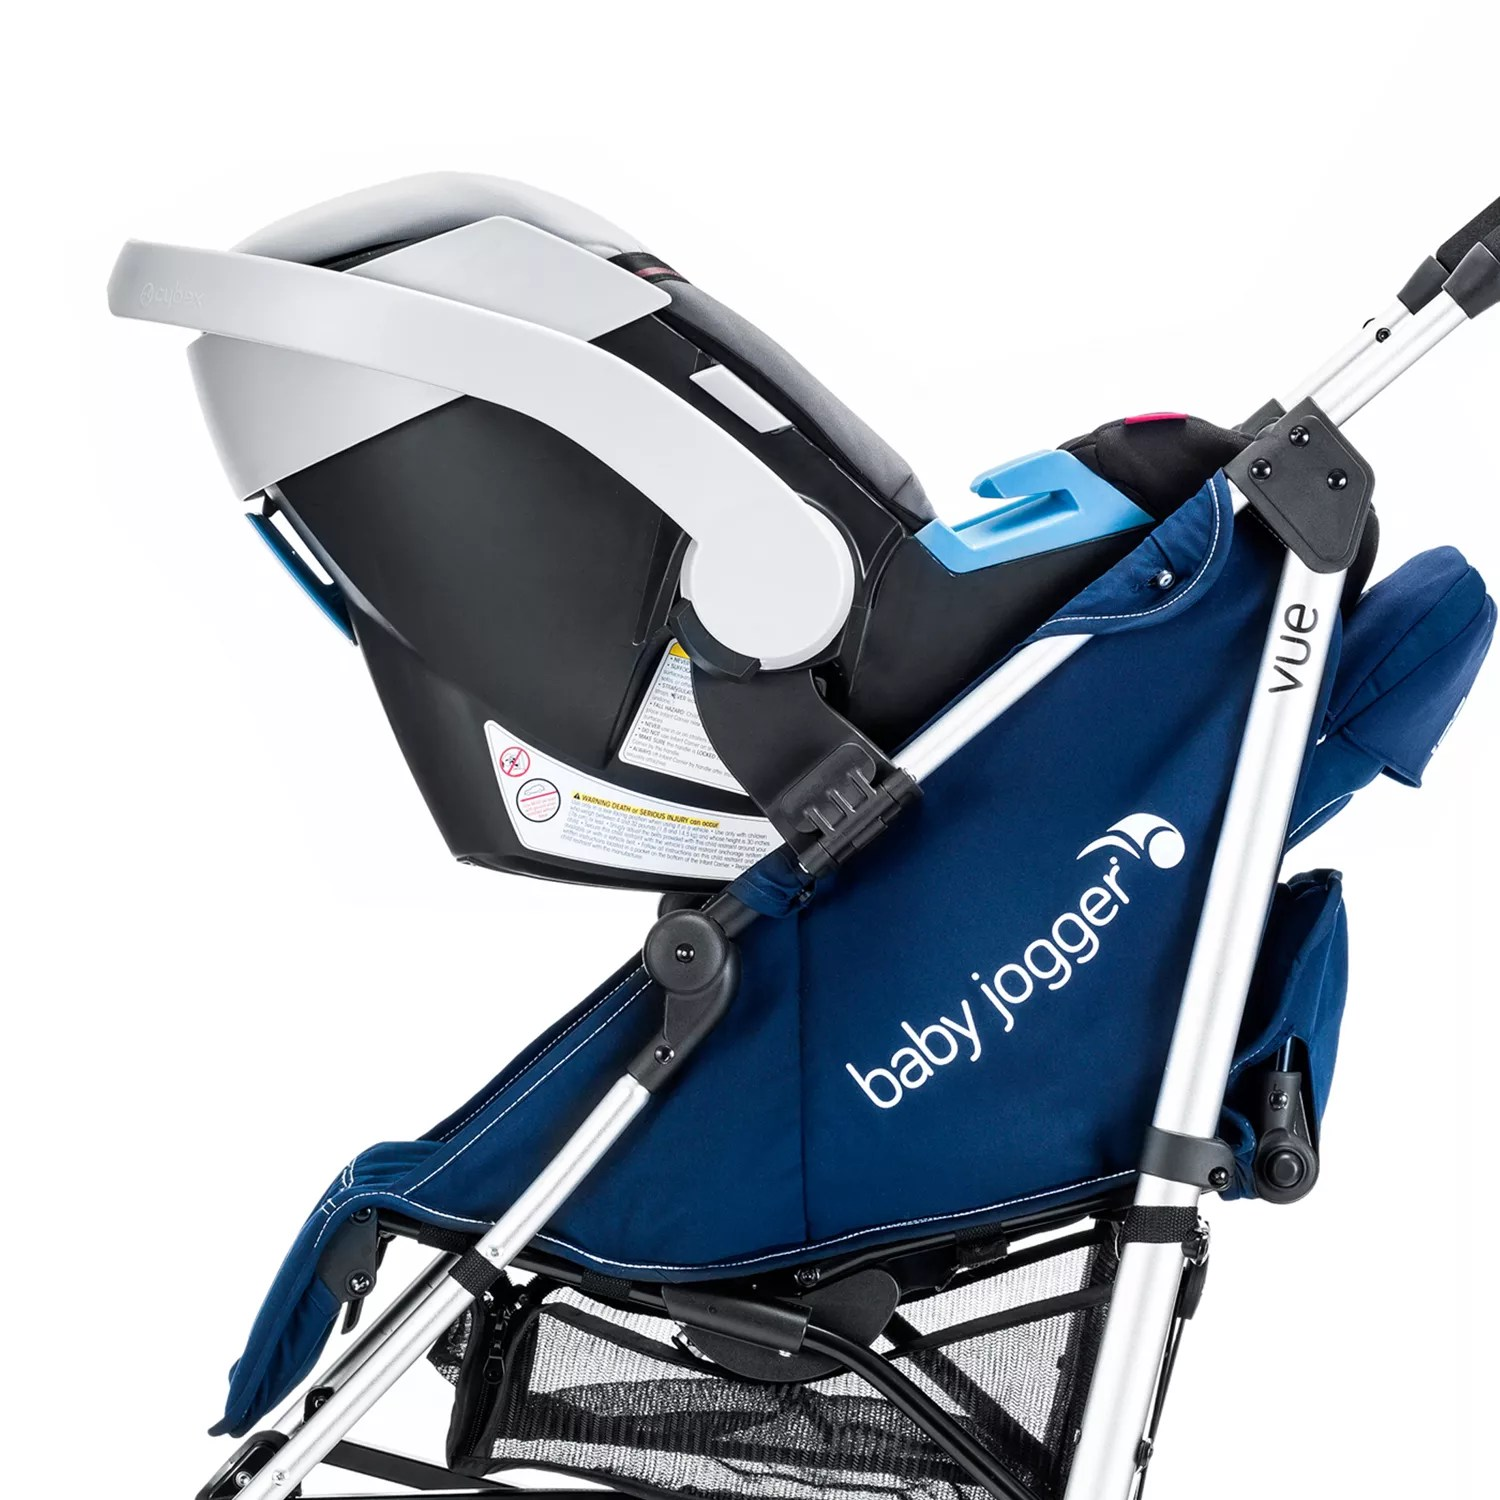 Kohls Baby Travel System Cybex Maxi Cosi Nuna Vue Car Seat Adapter By Baby Jogger